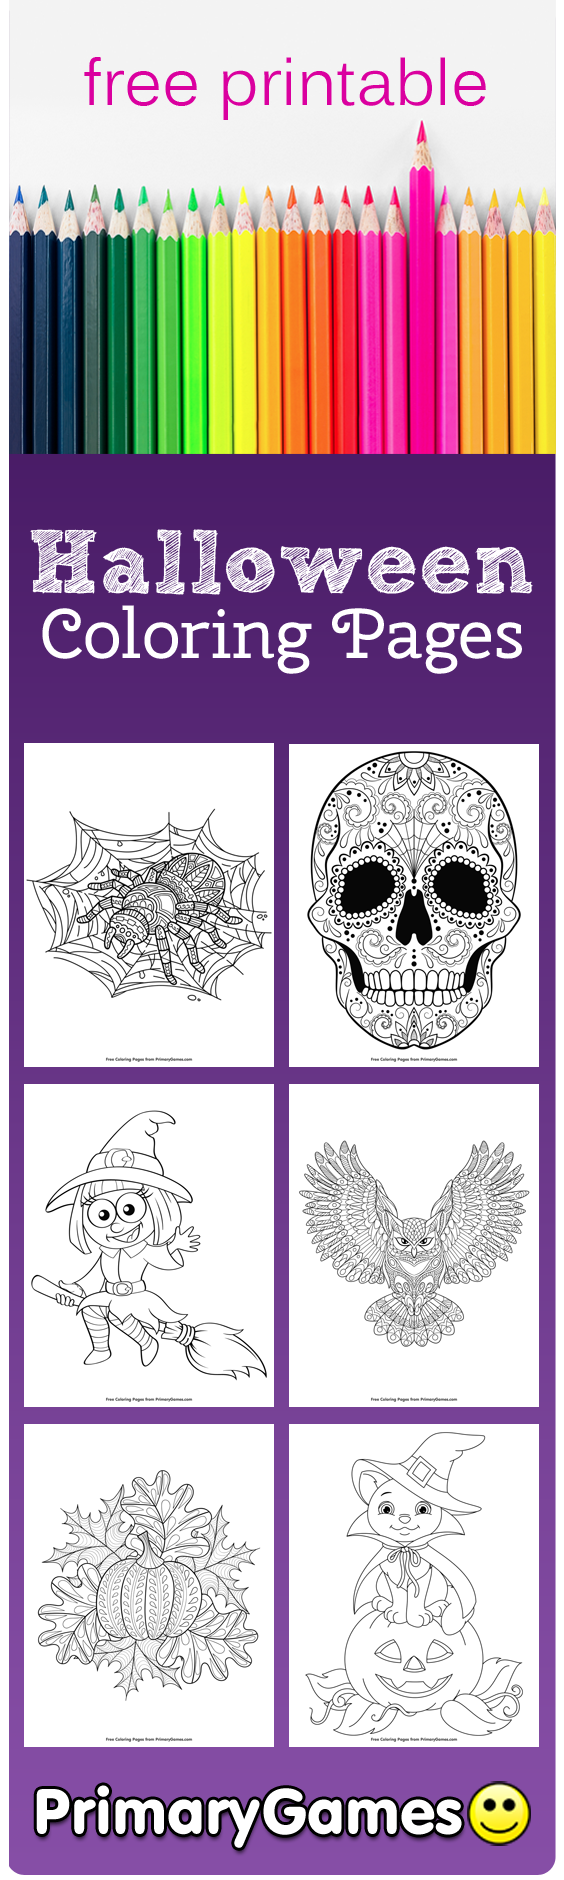 Halloween Coloring Pages | Printable Coloring eBook ...